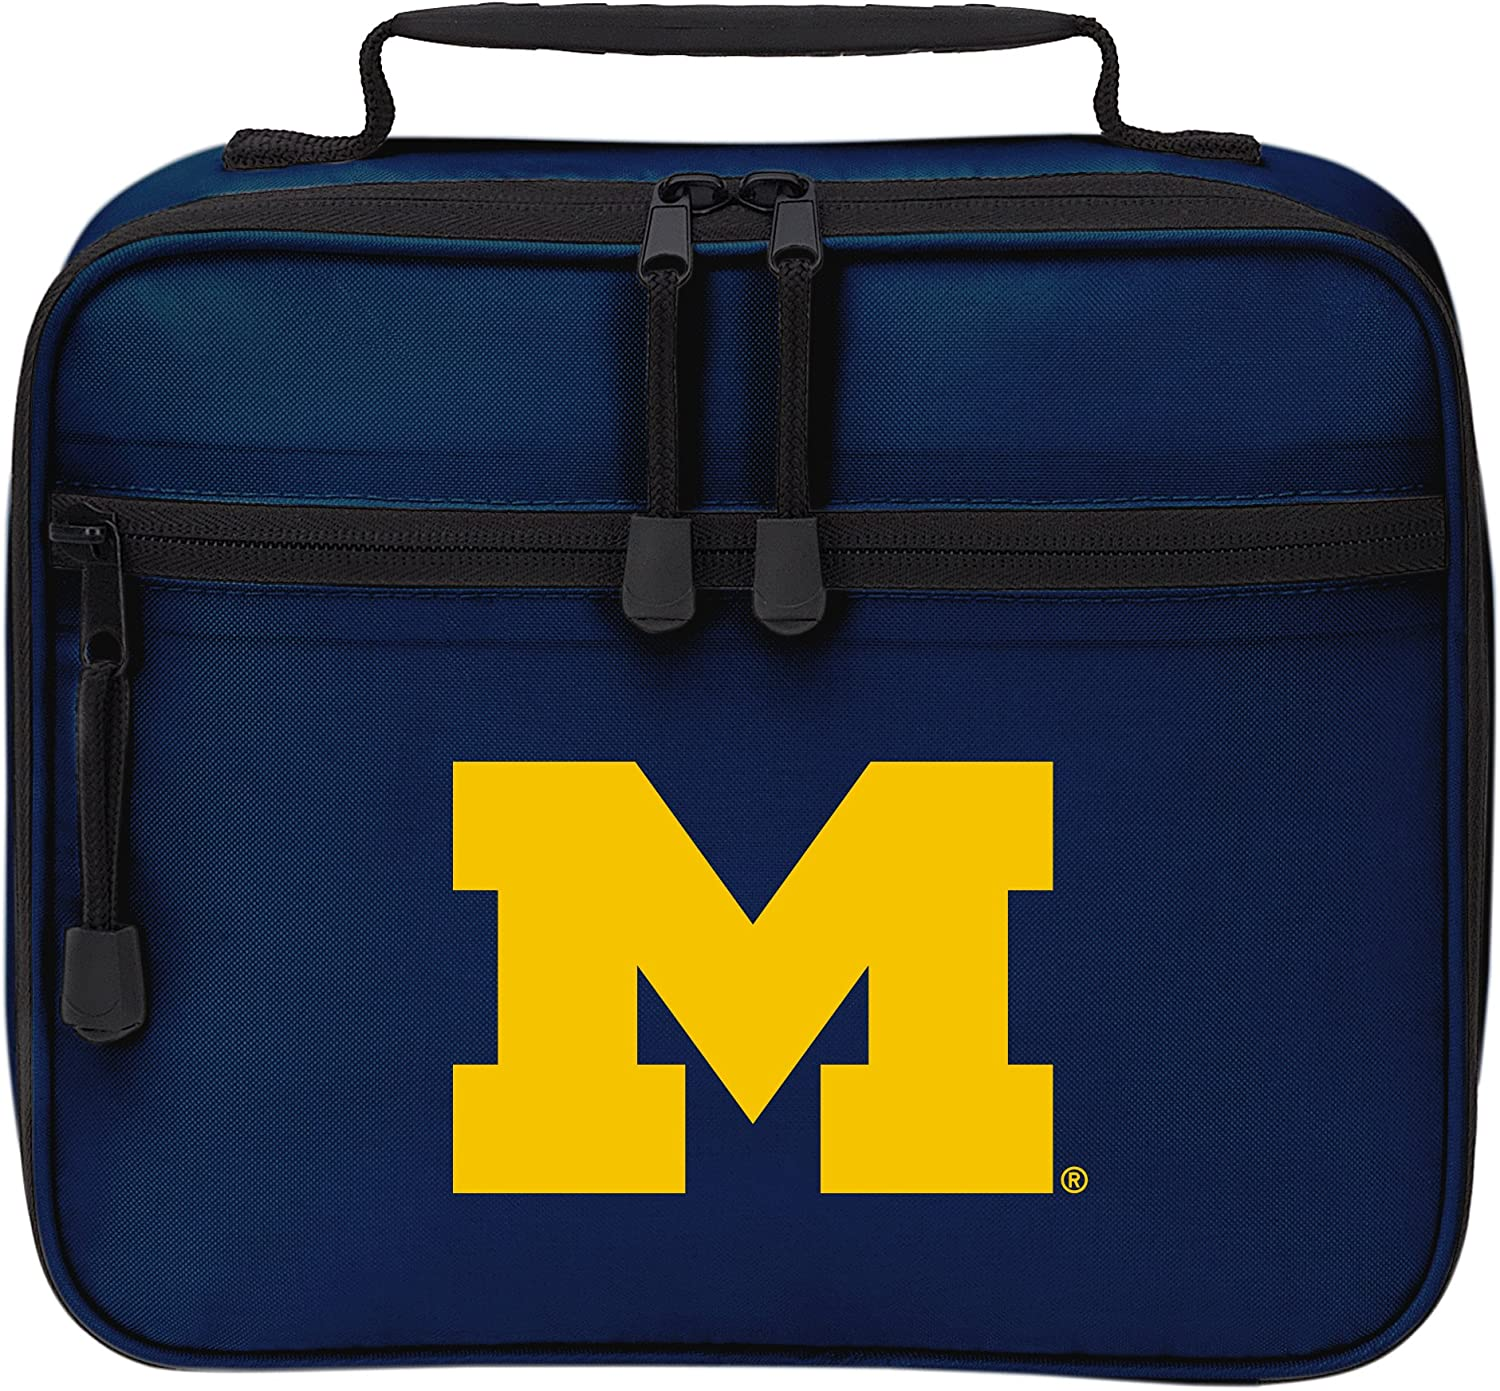 The Northwest Company Officially Licensed NCAA Cooltime Lunch Kit, One Size